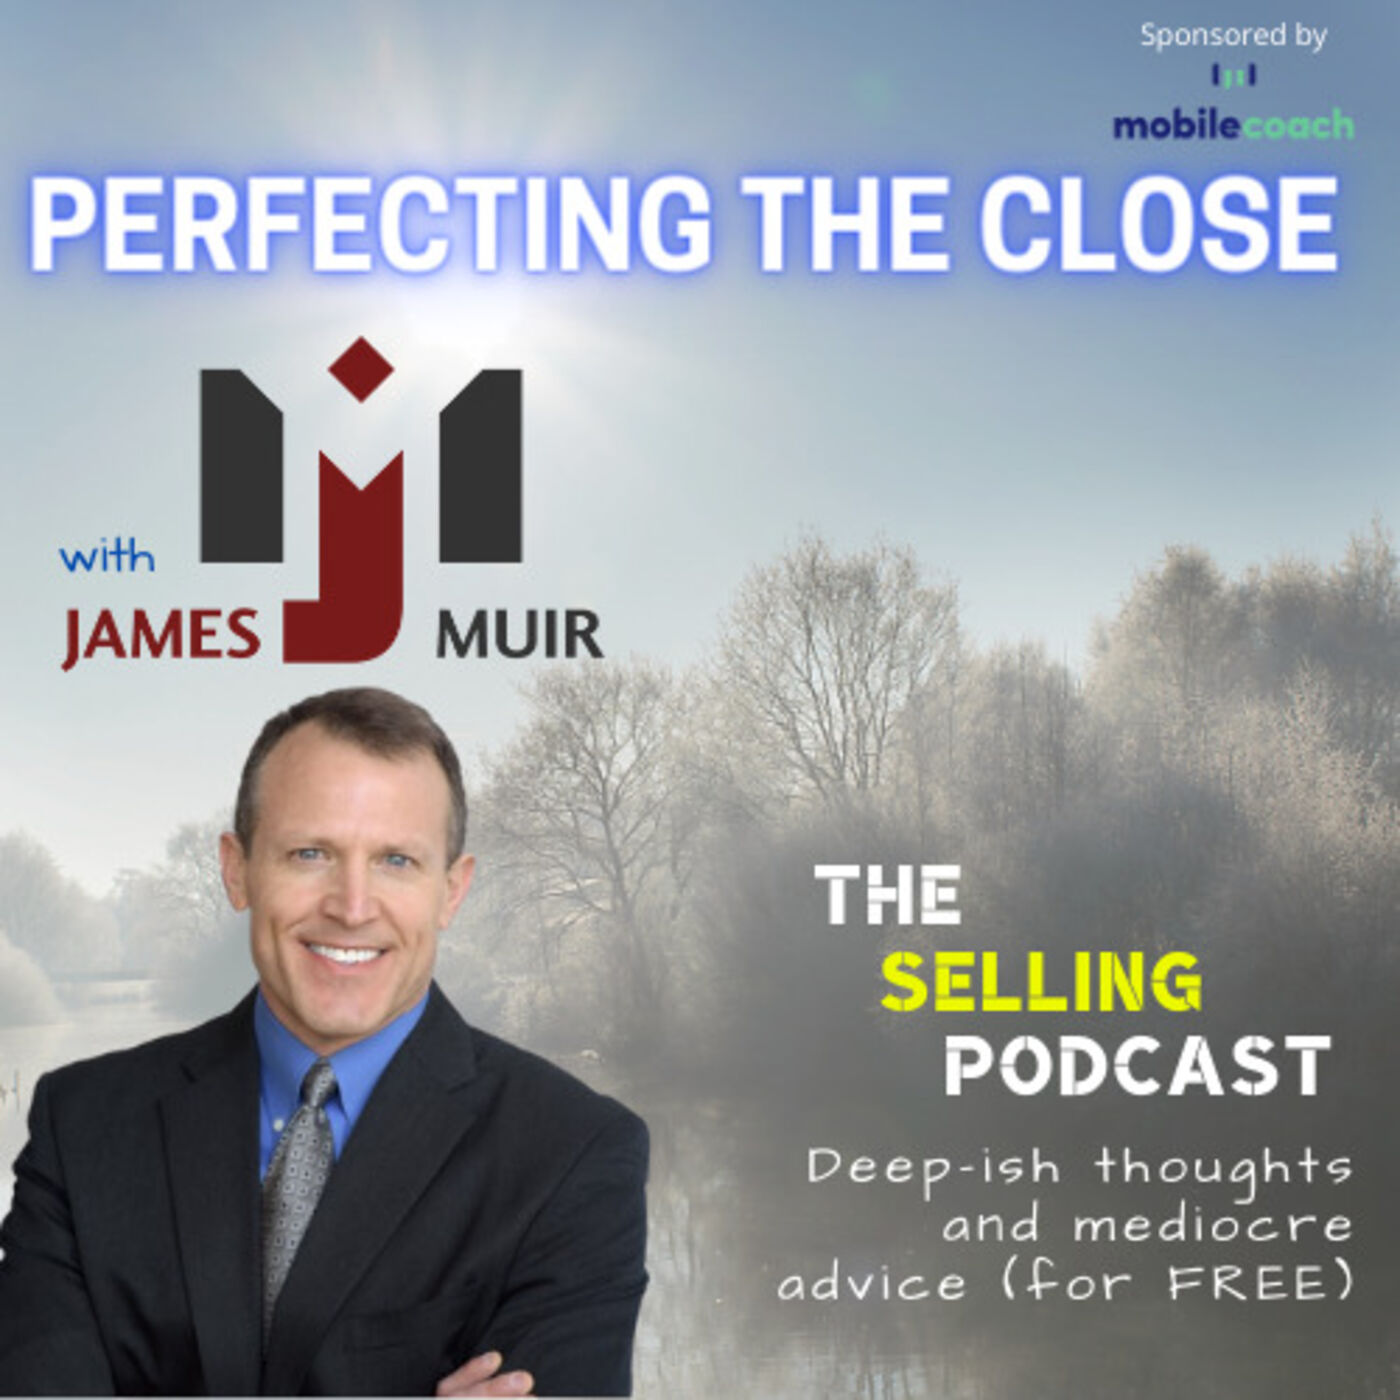 PERFECTING THE CLOSE WITH JAMES MUIR